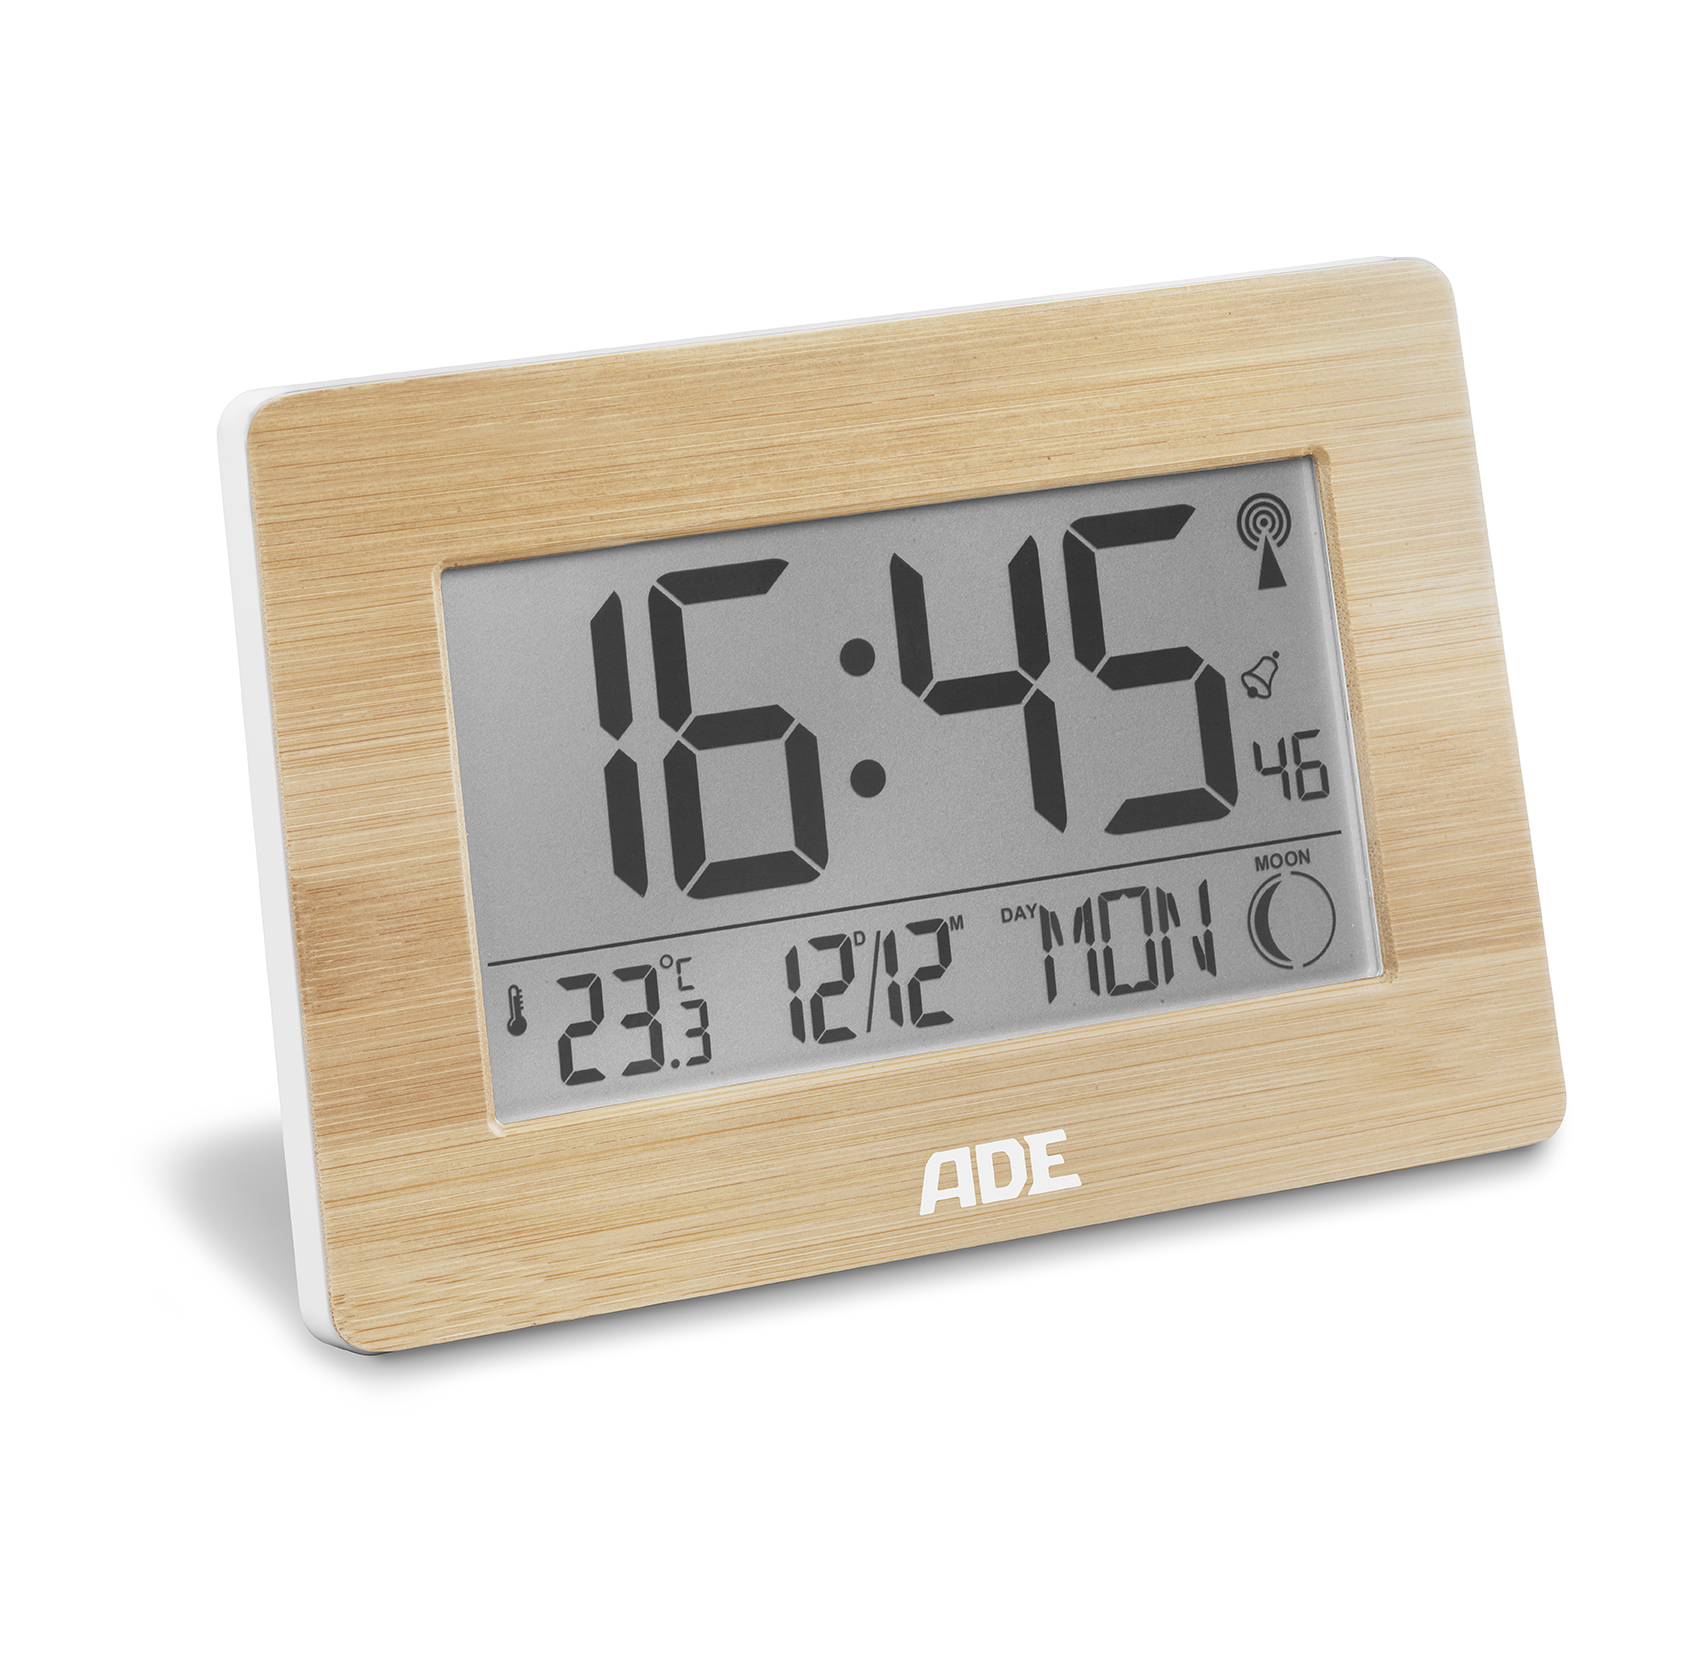 Radio controlled clock with moon phase, temperature and date display